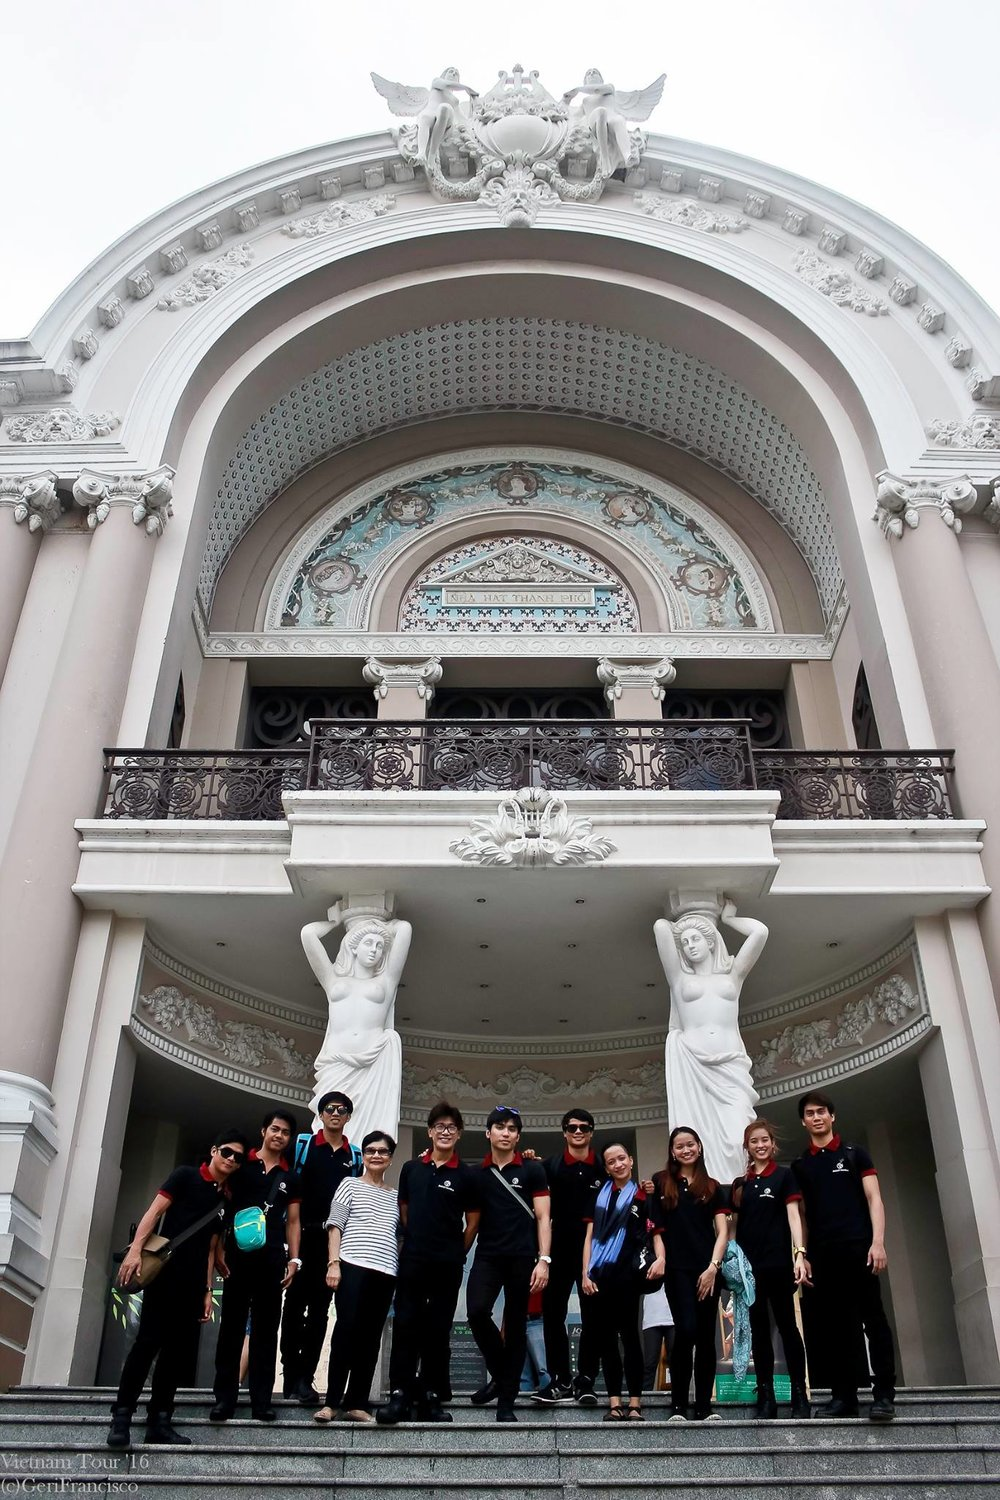 Mrs. Macuja (fourth from left) was with the BM group that went to Vietnam in 2016 and performed at the Saigon Opera House in Ho Chi Mihn (above) and in Can Tho City.